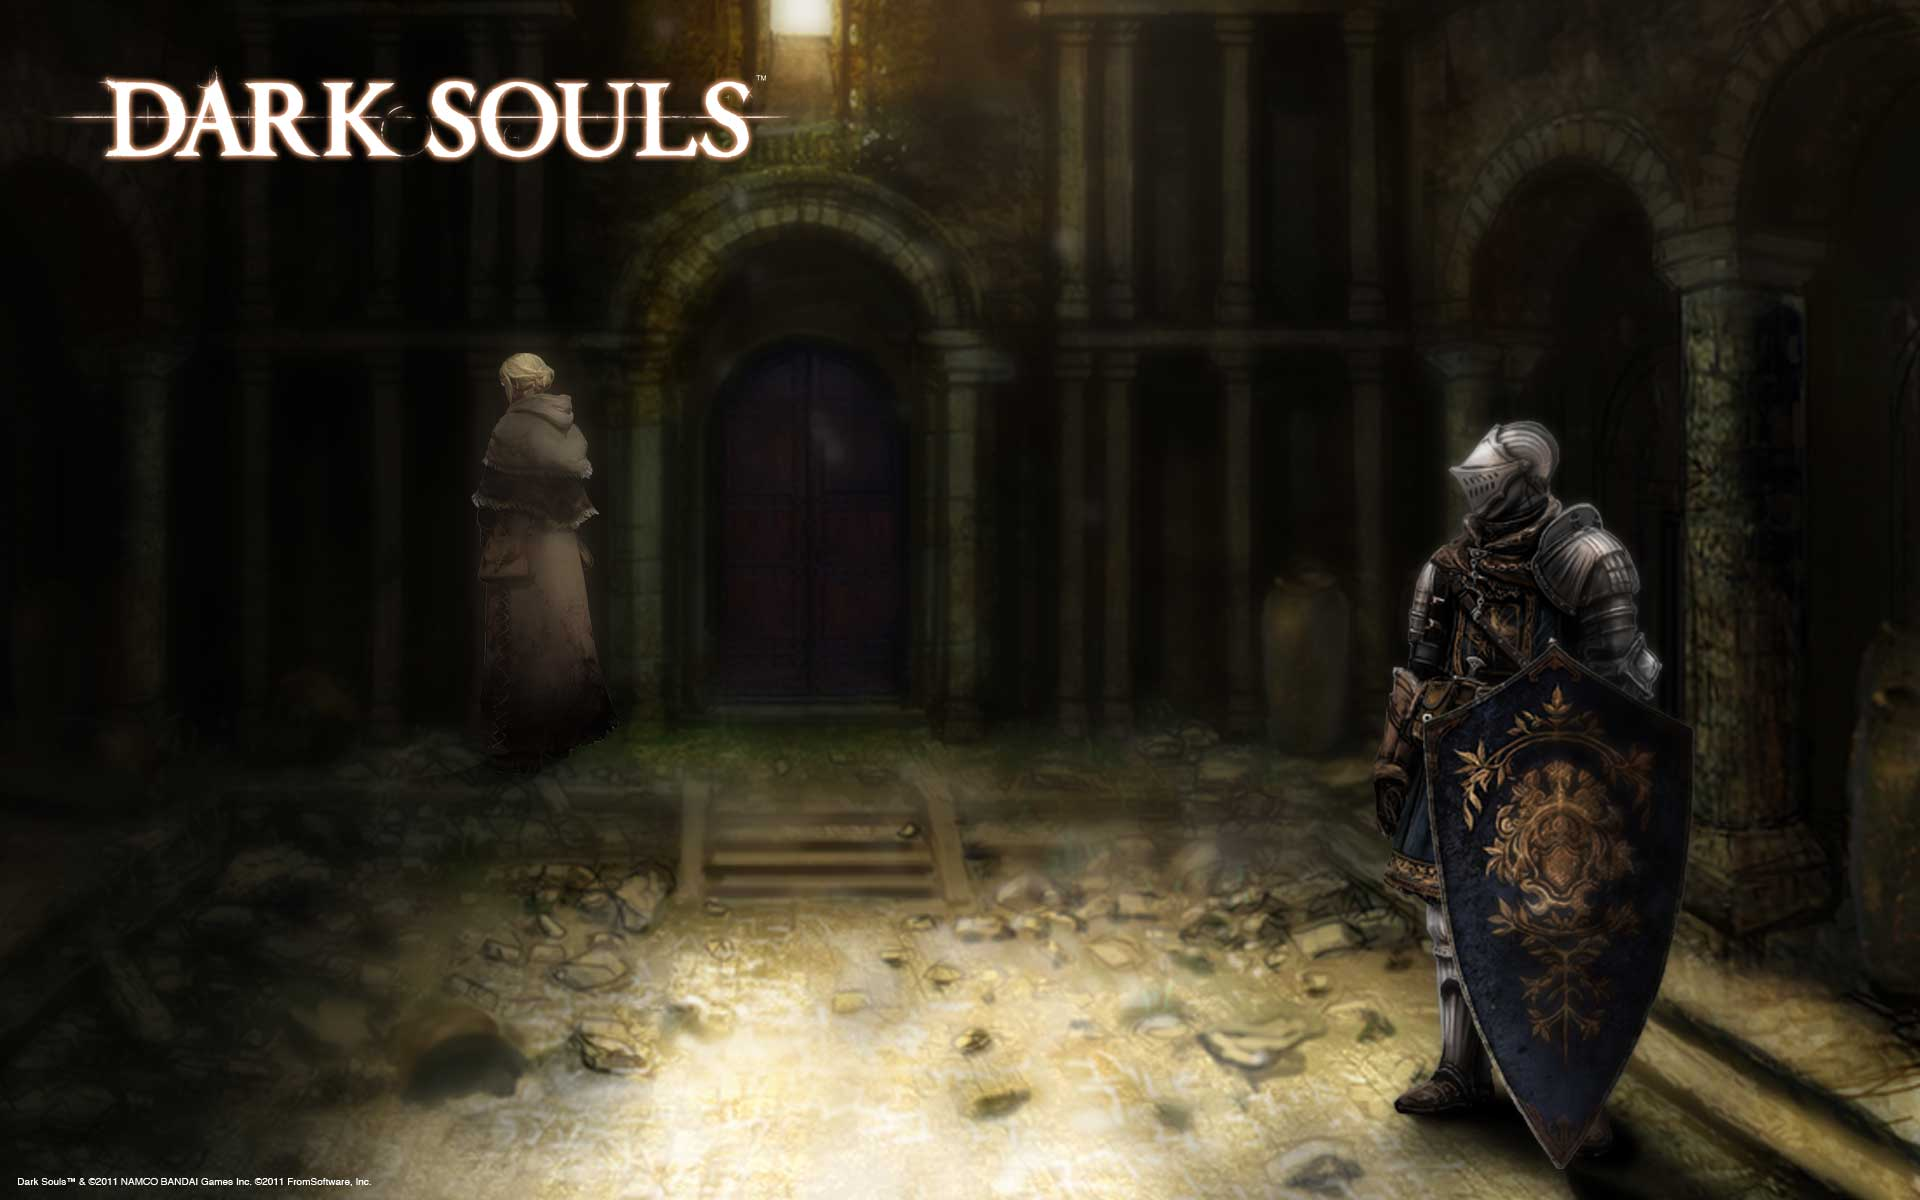 dark souls 3 hd wallpaper, dark souls boss wallpaper